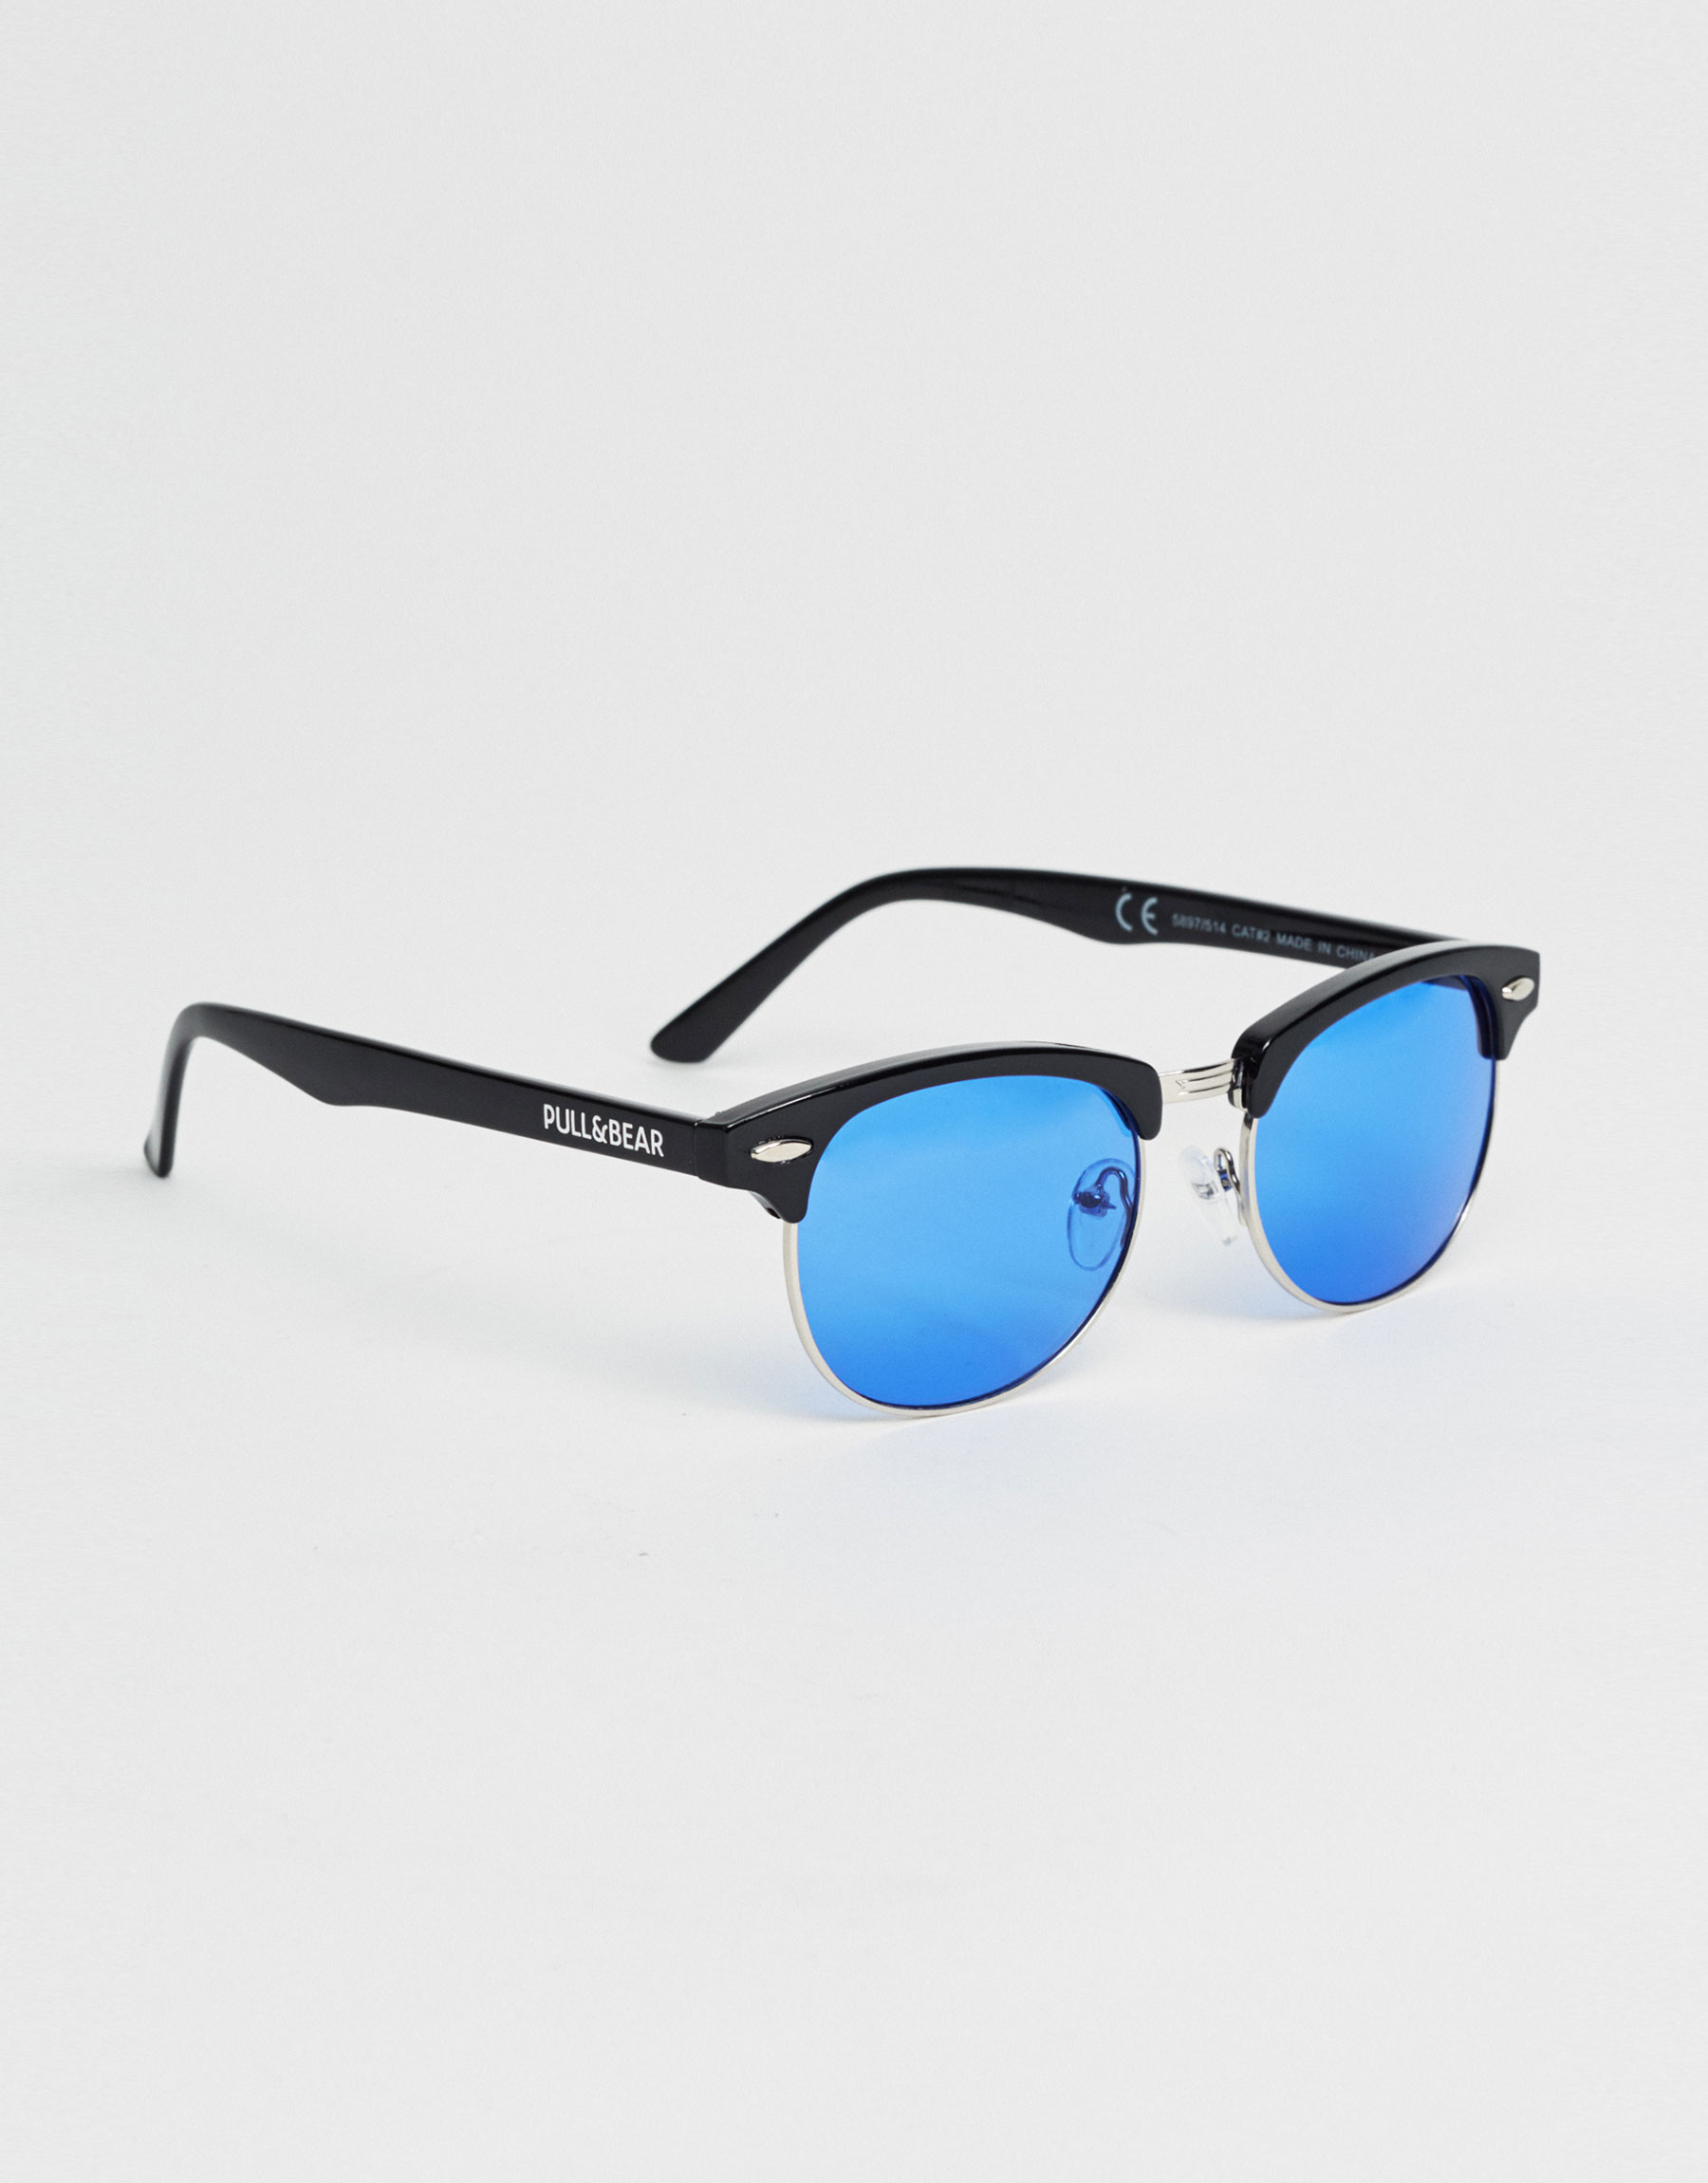 Sunglasses with blue lens and retro frame